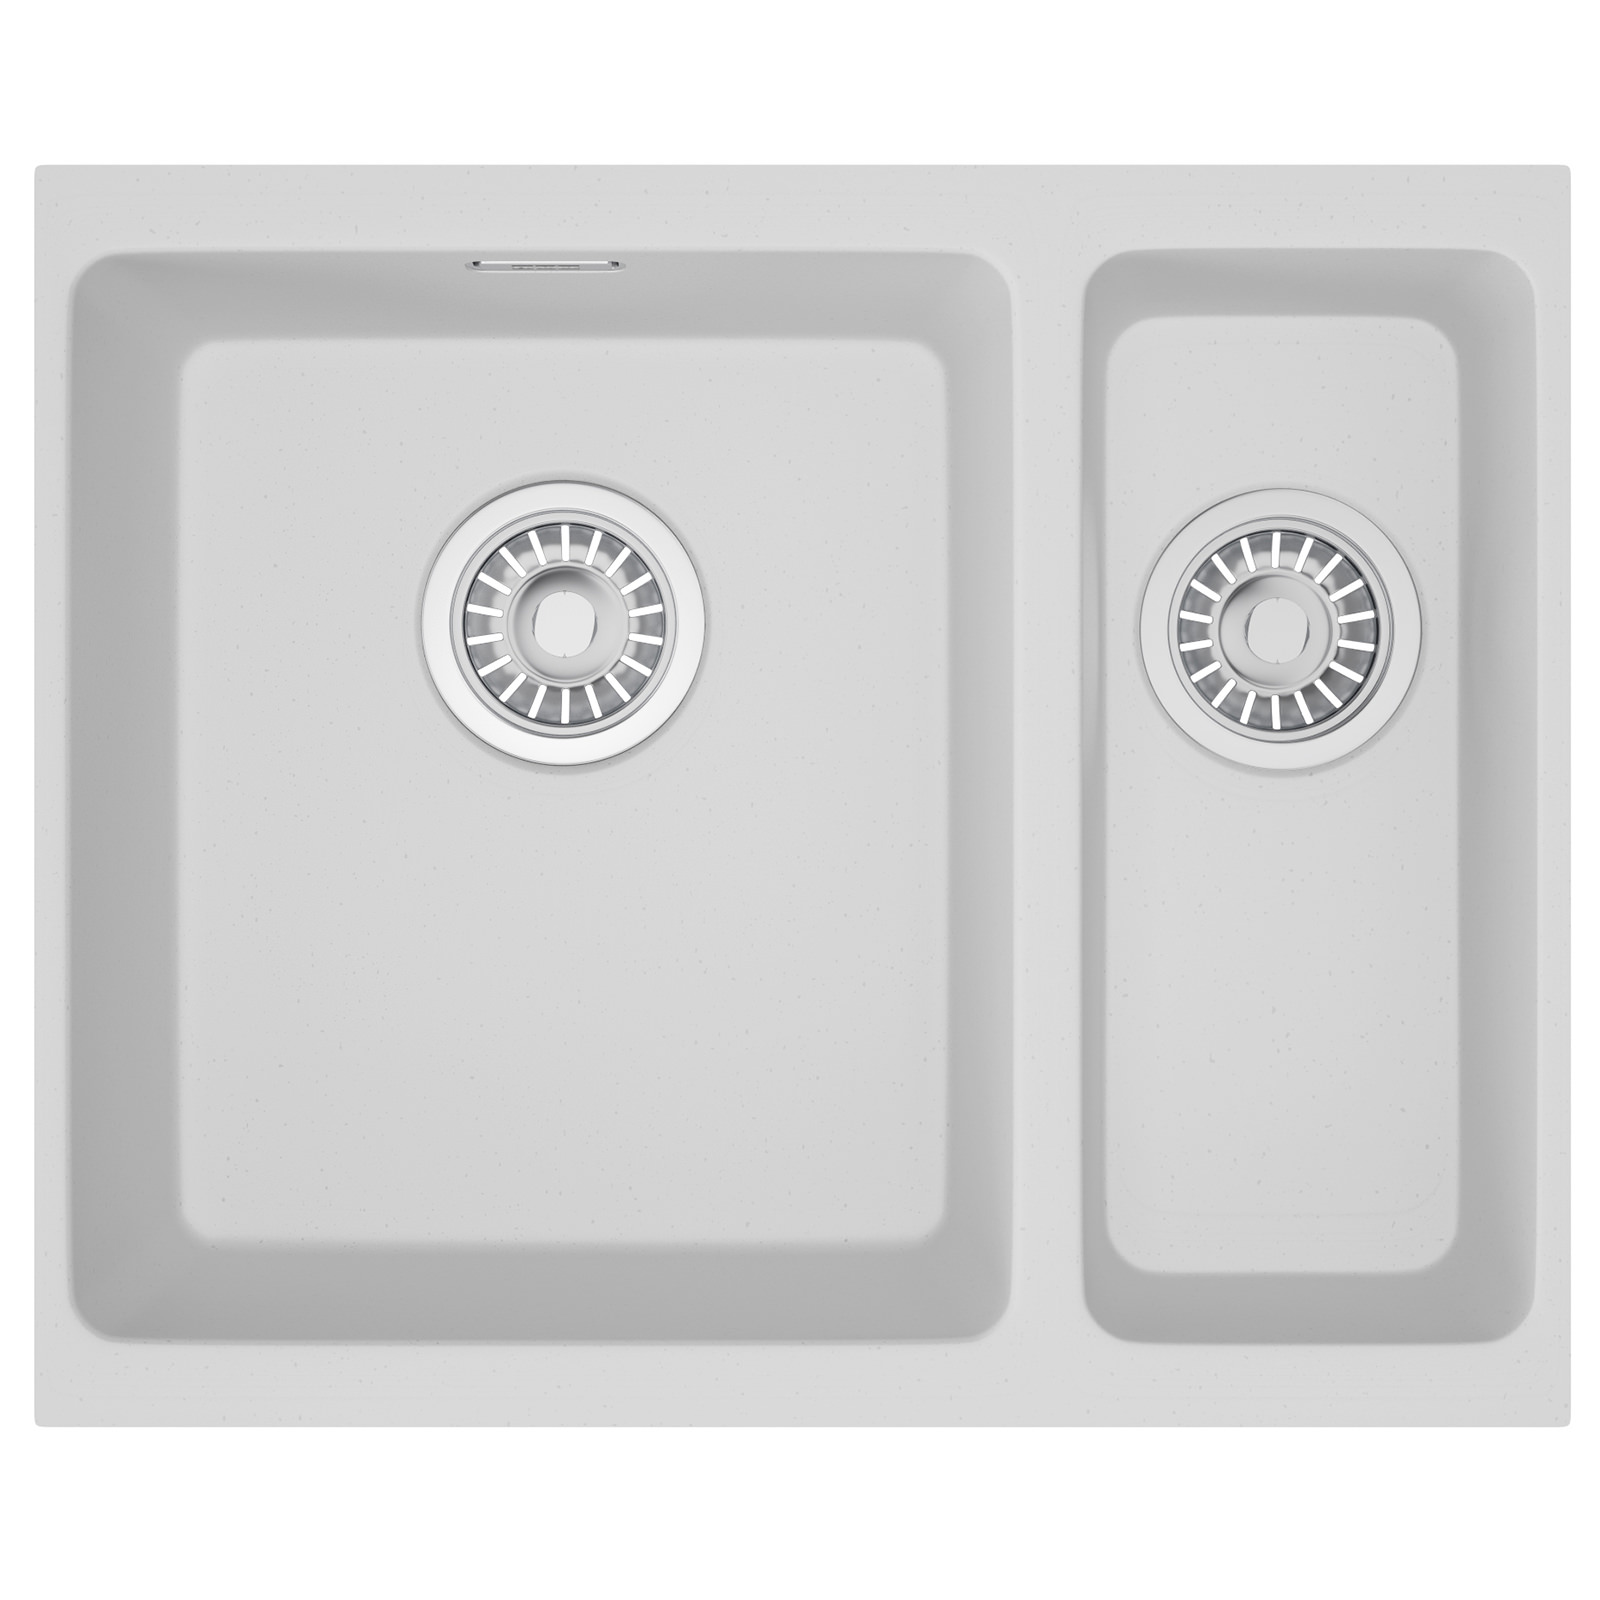 Franke Fragranite Undermount Sink : Franke Kubus KBG 160 Fragranite Polar White 1.5 Bowl Undermount Sink ...